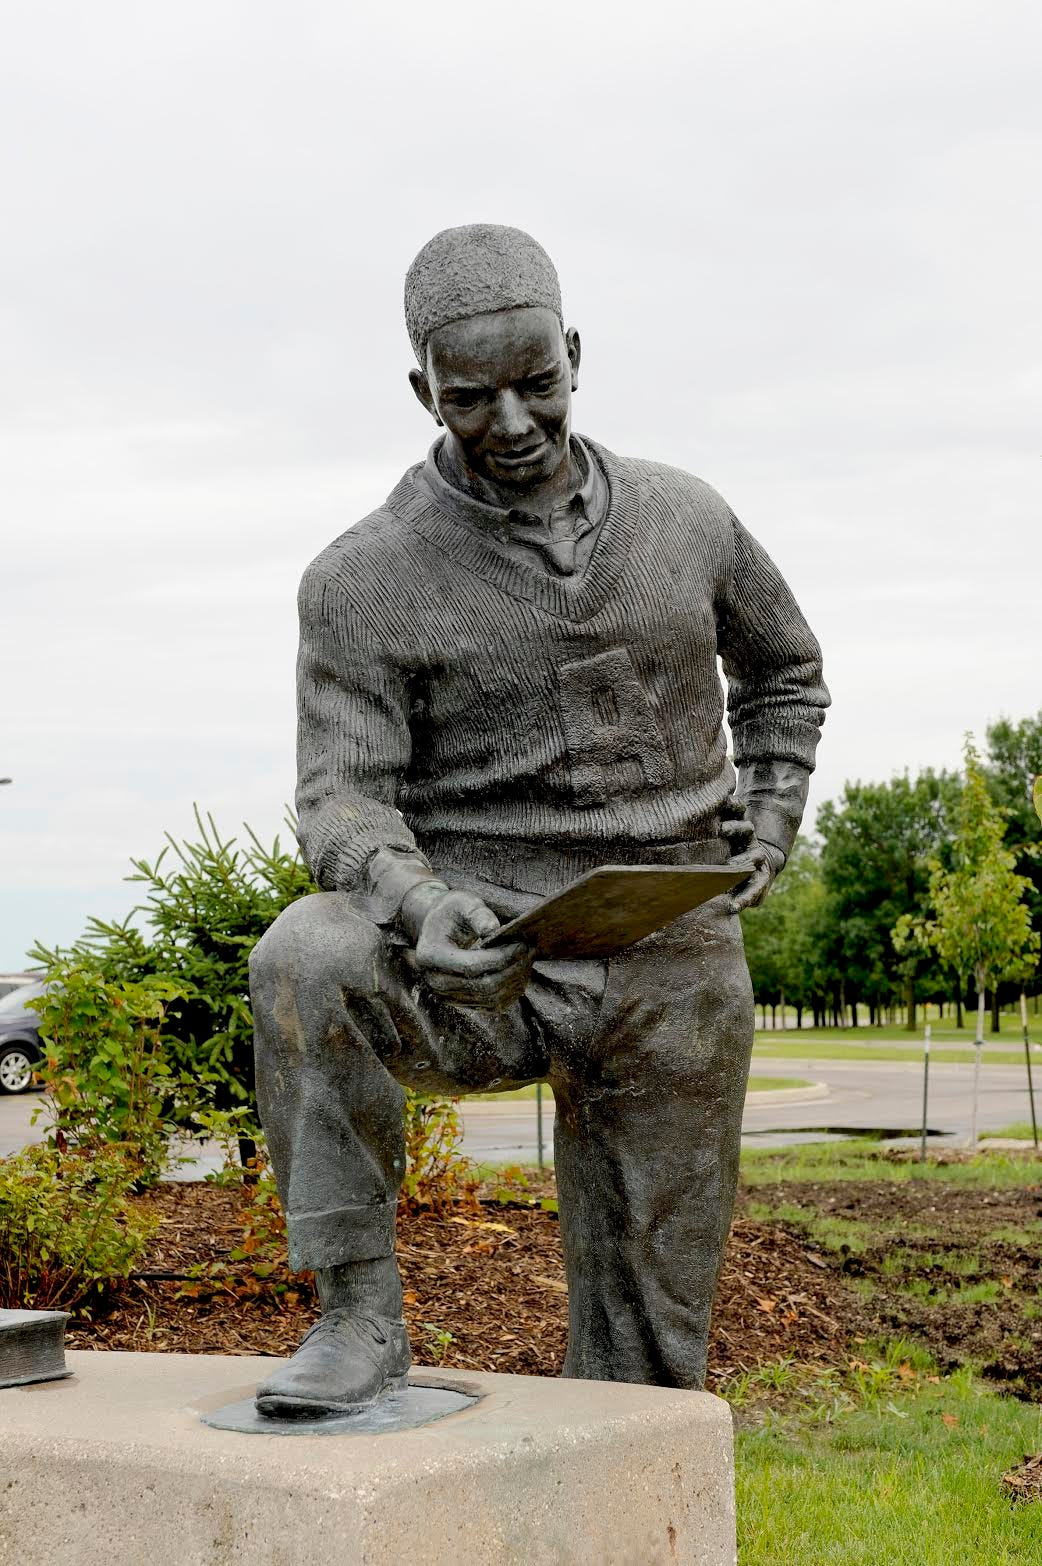 A statue of Jack Trice, Iowa State's first Black athlete, stands on the Ames campus.